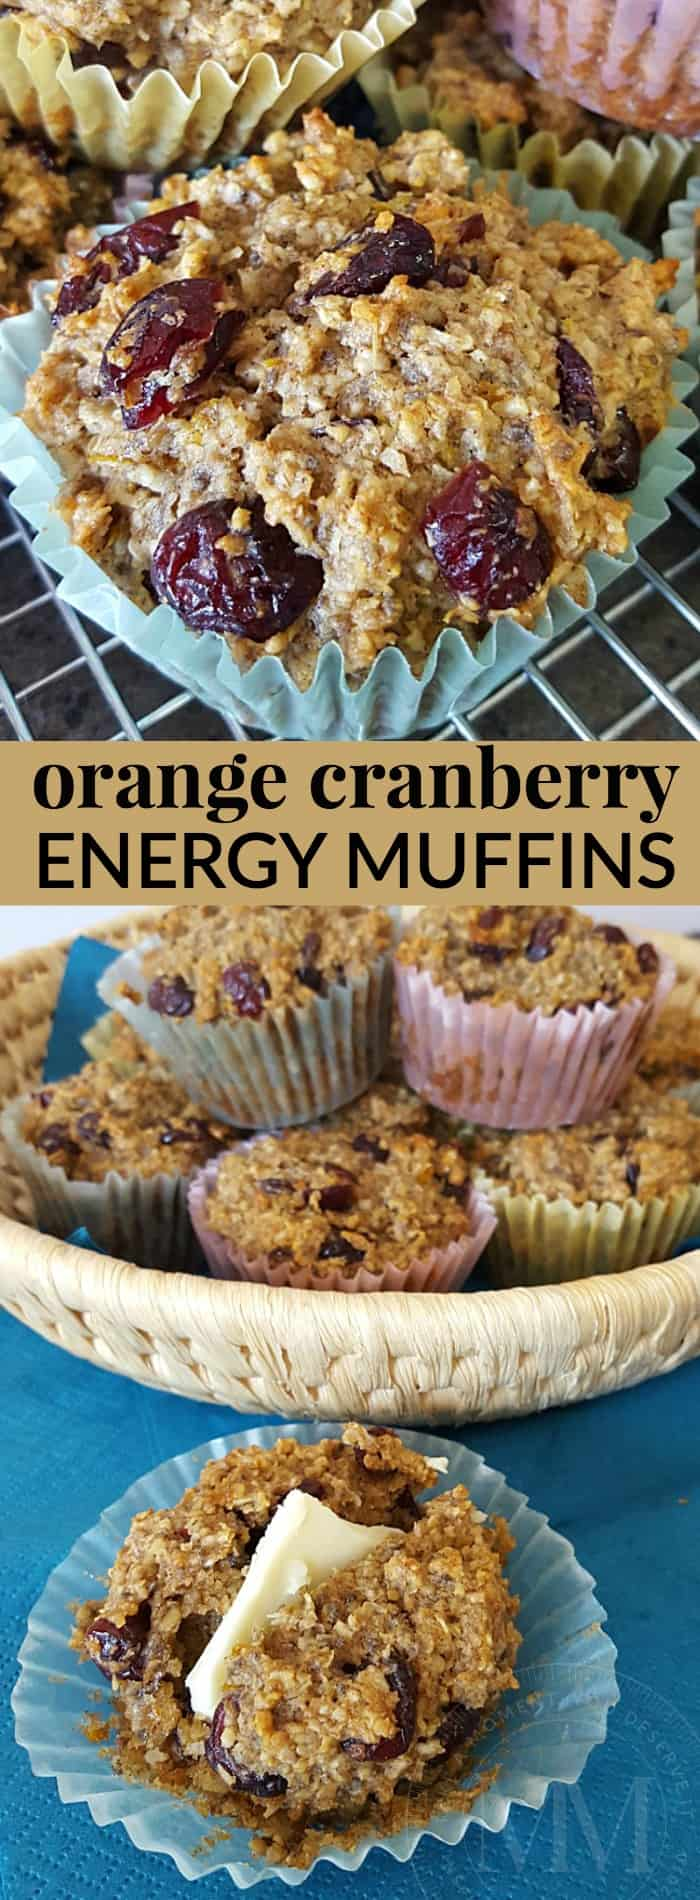 orange cranberry energy muffins